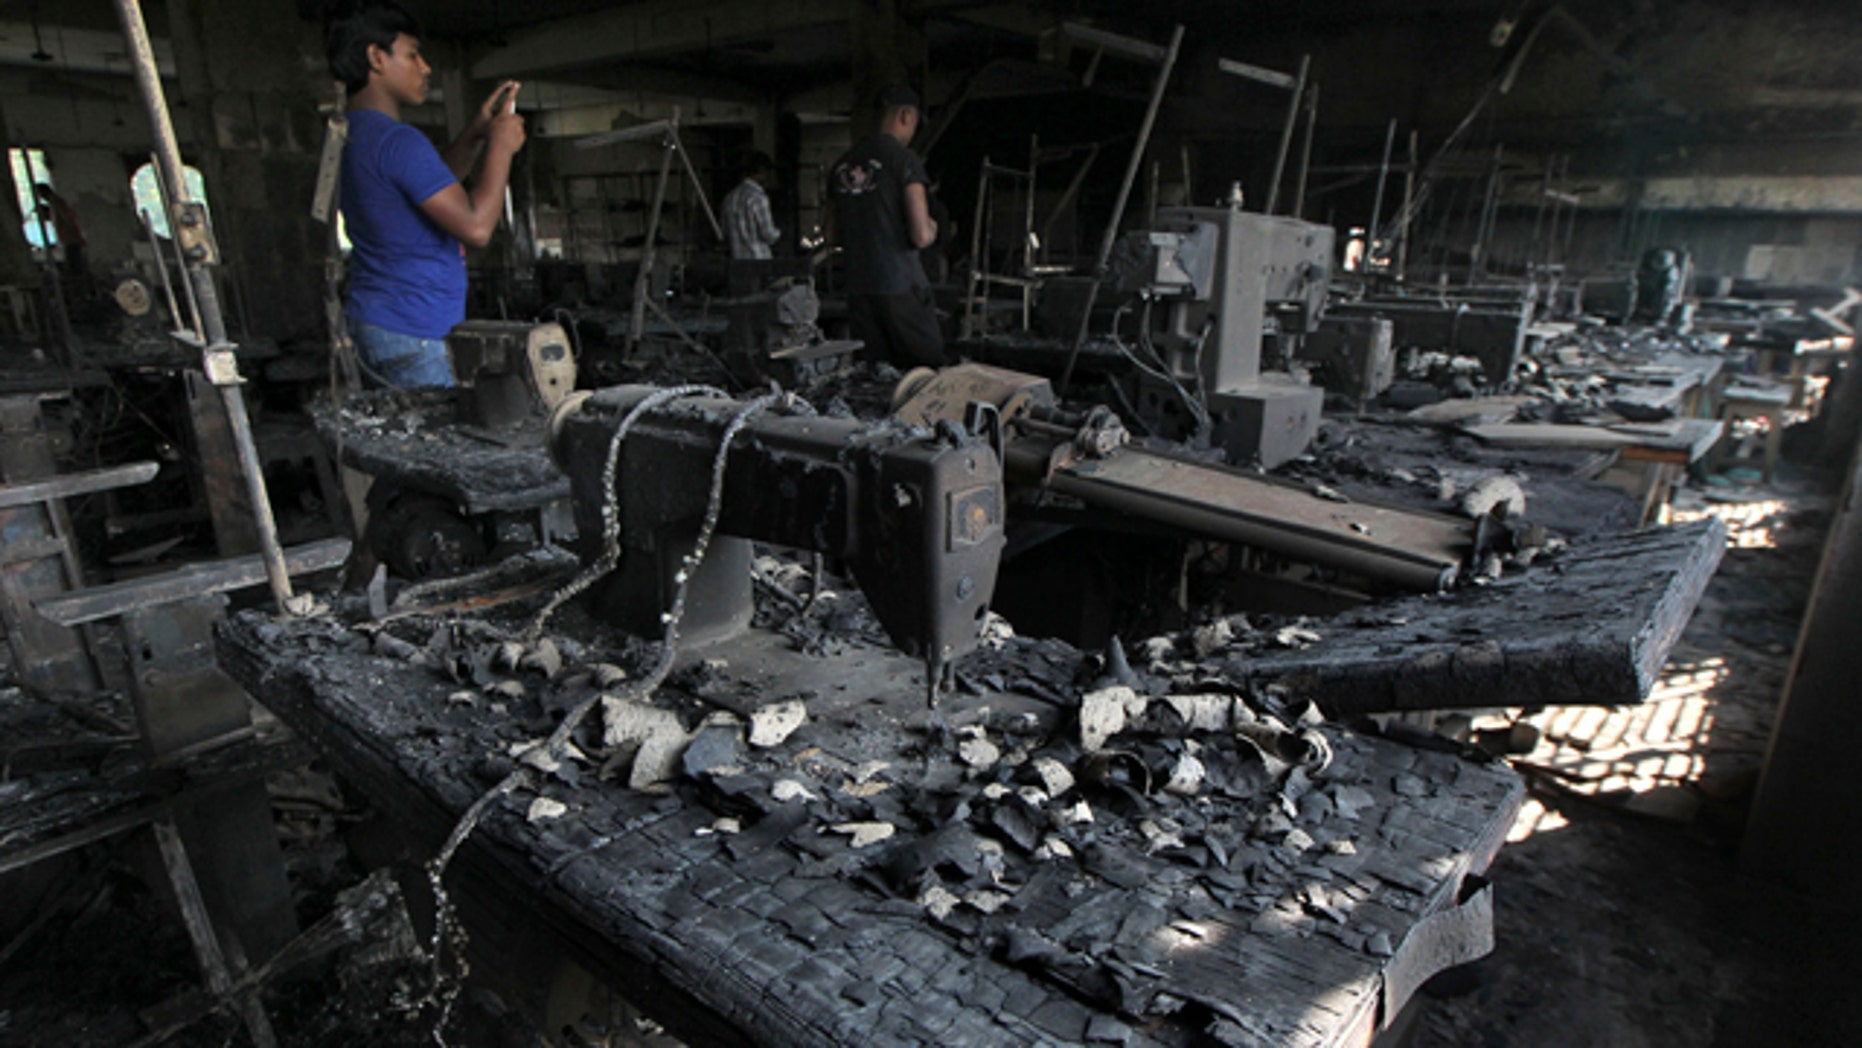 Nov. 26, 2012: A man takes photographs inside a garment-factory where a fire killed more than 110 people  on the outskirts of Dhaka, Bangladesh.